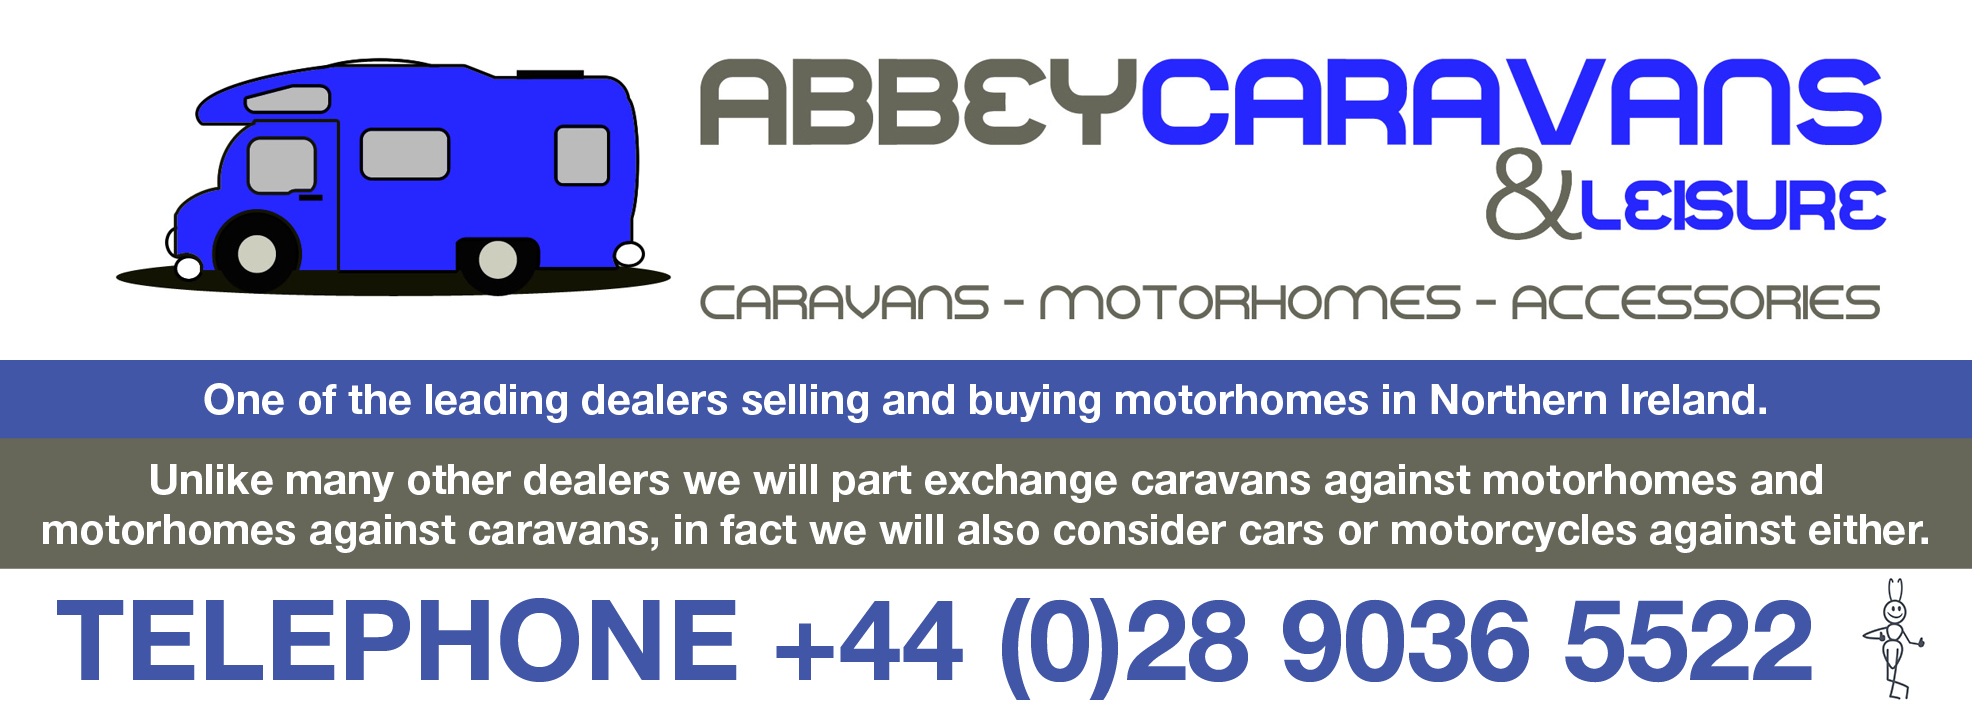 Caravan Buy and Sell - used and new caravans in UK all Ireland